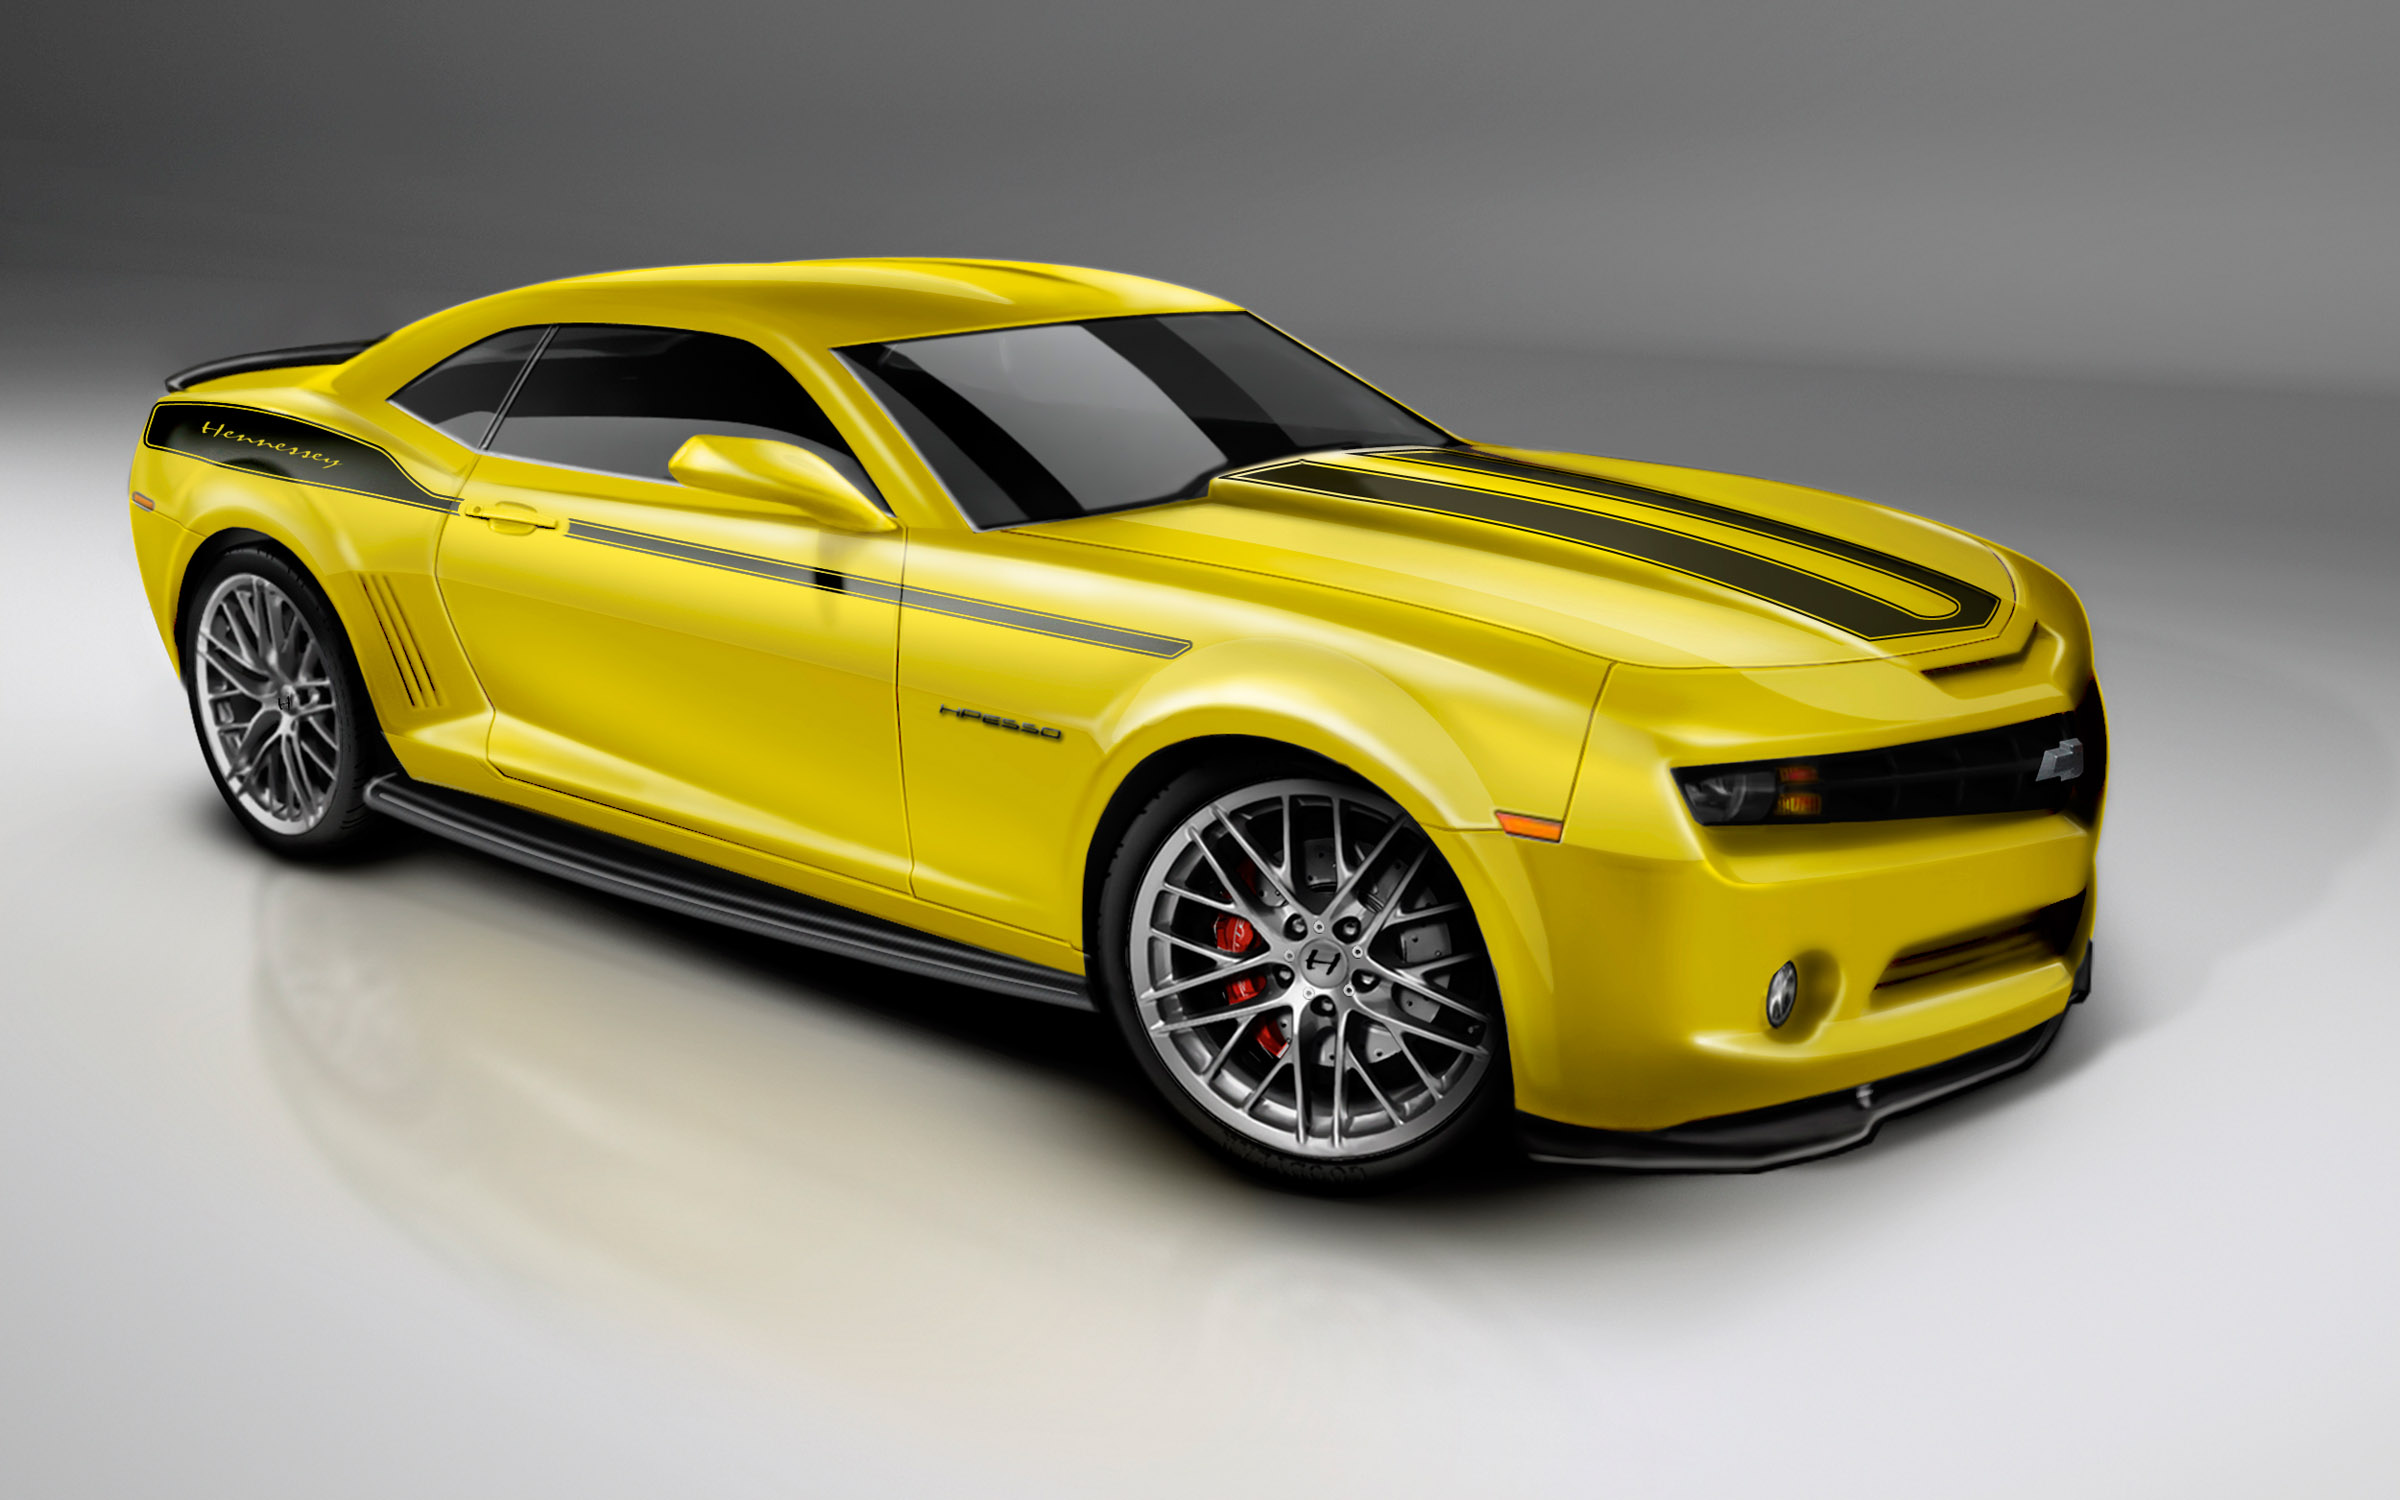 Download 2010 Camero Yellow Cars Wallpapers For Your Mobile Cell Phone